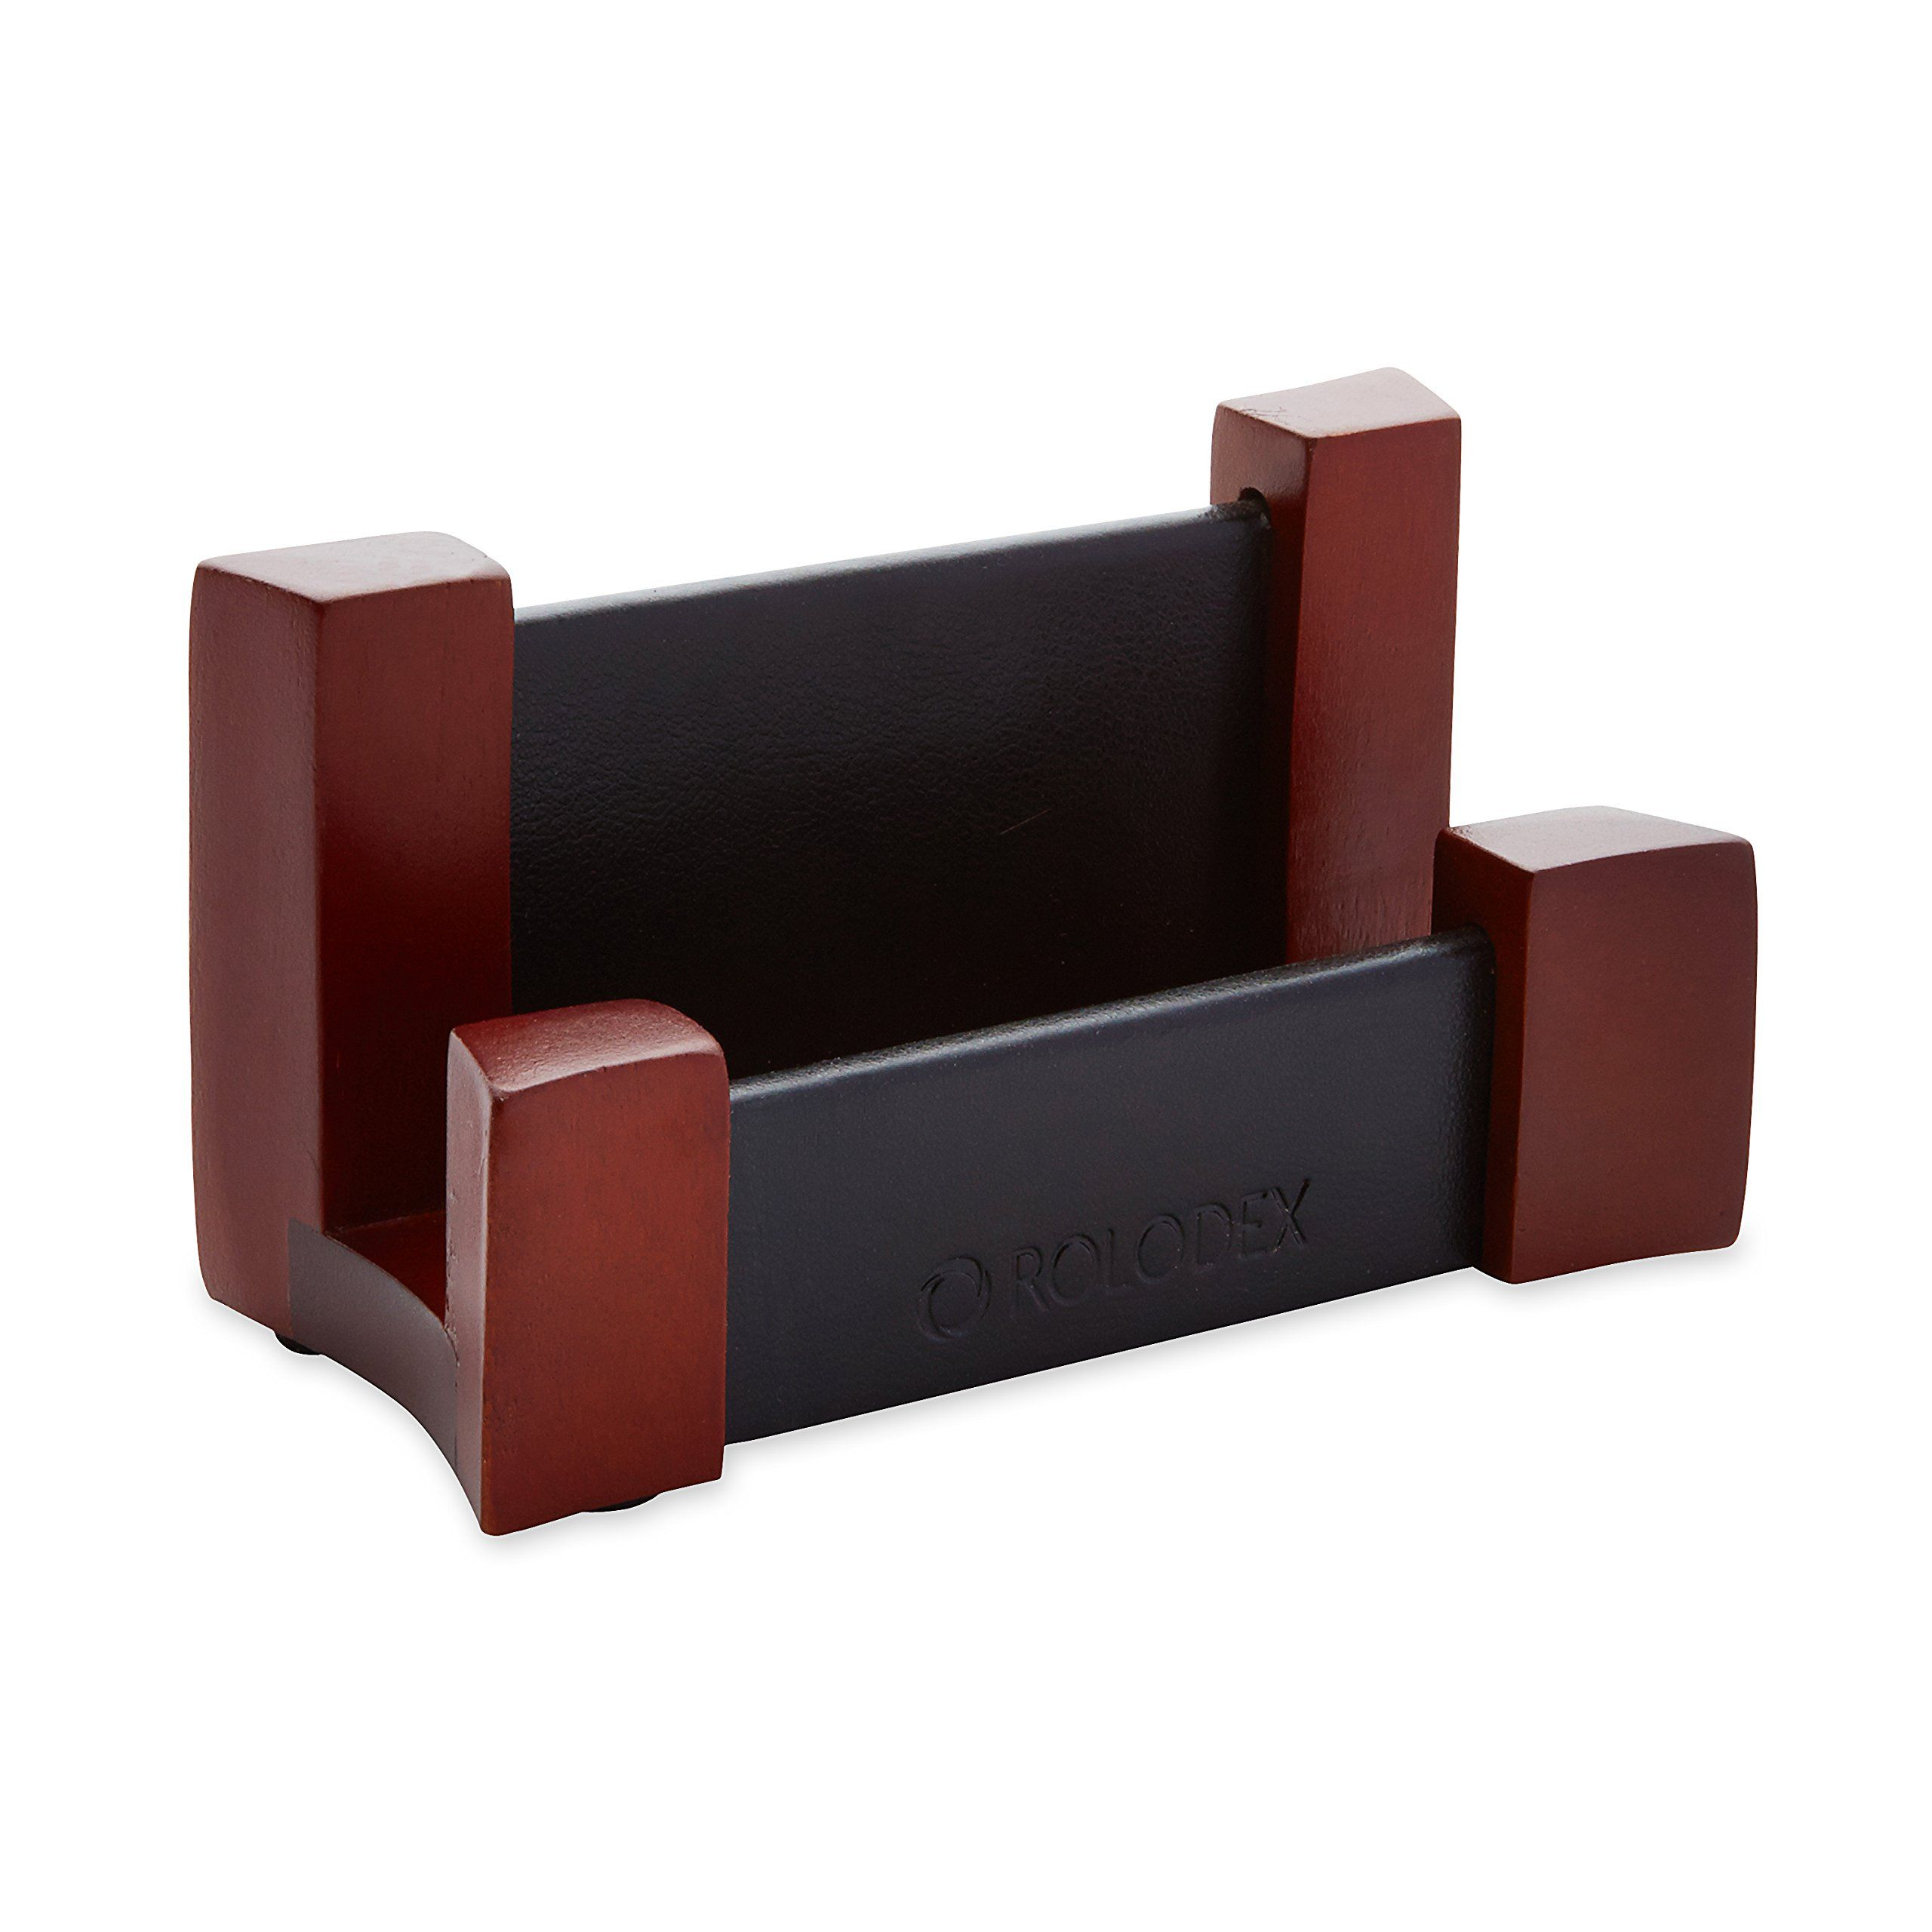 Rolodex Wood and Faux Leather Business Card Holder, Mahogany and ...